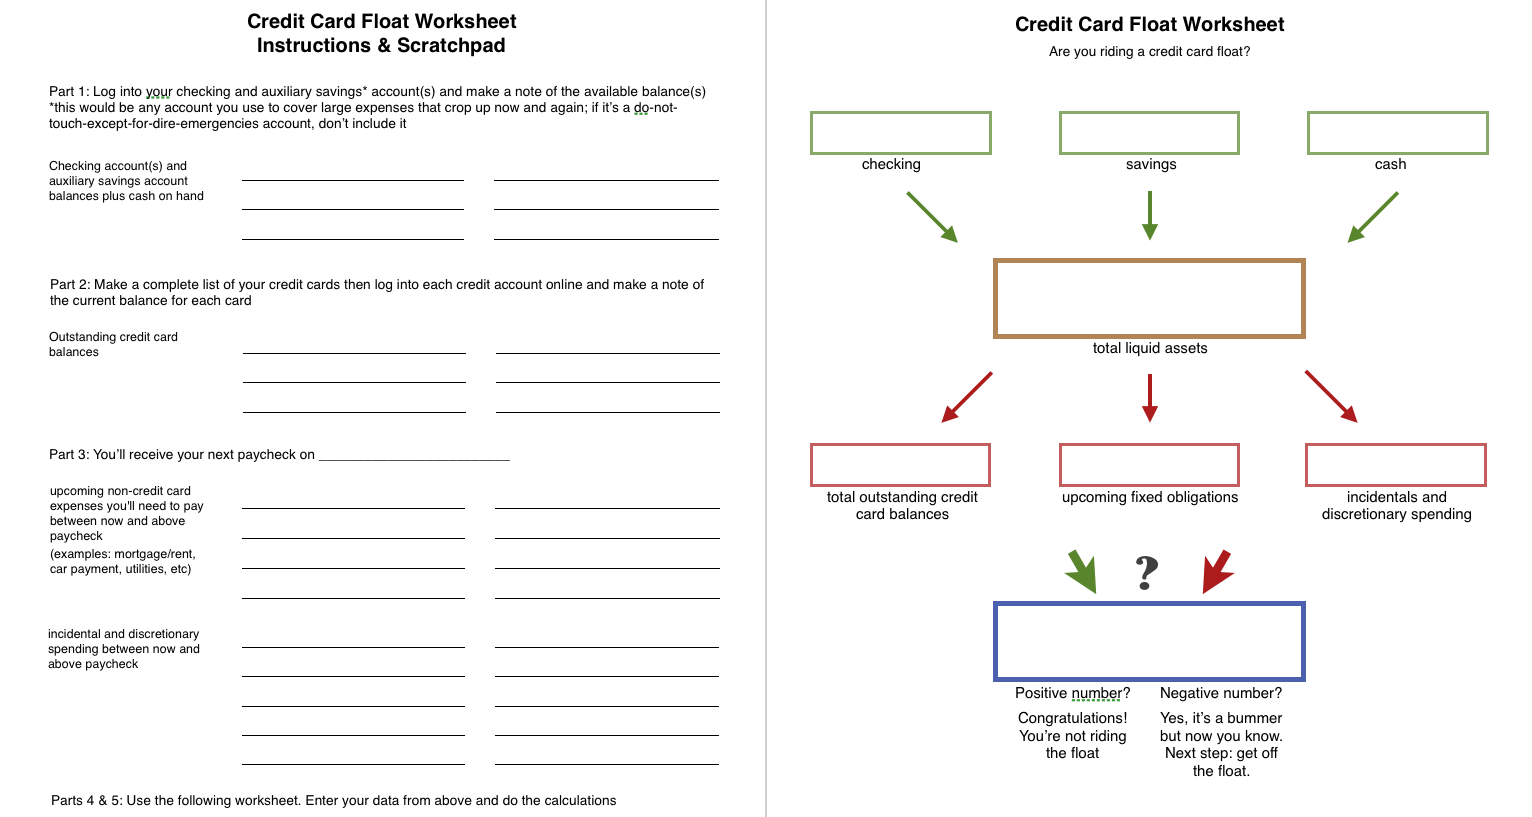 screenshot of a worksheet and instructions for determining credit card float